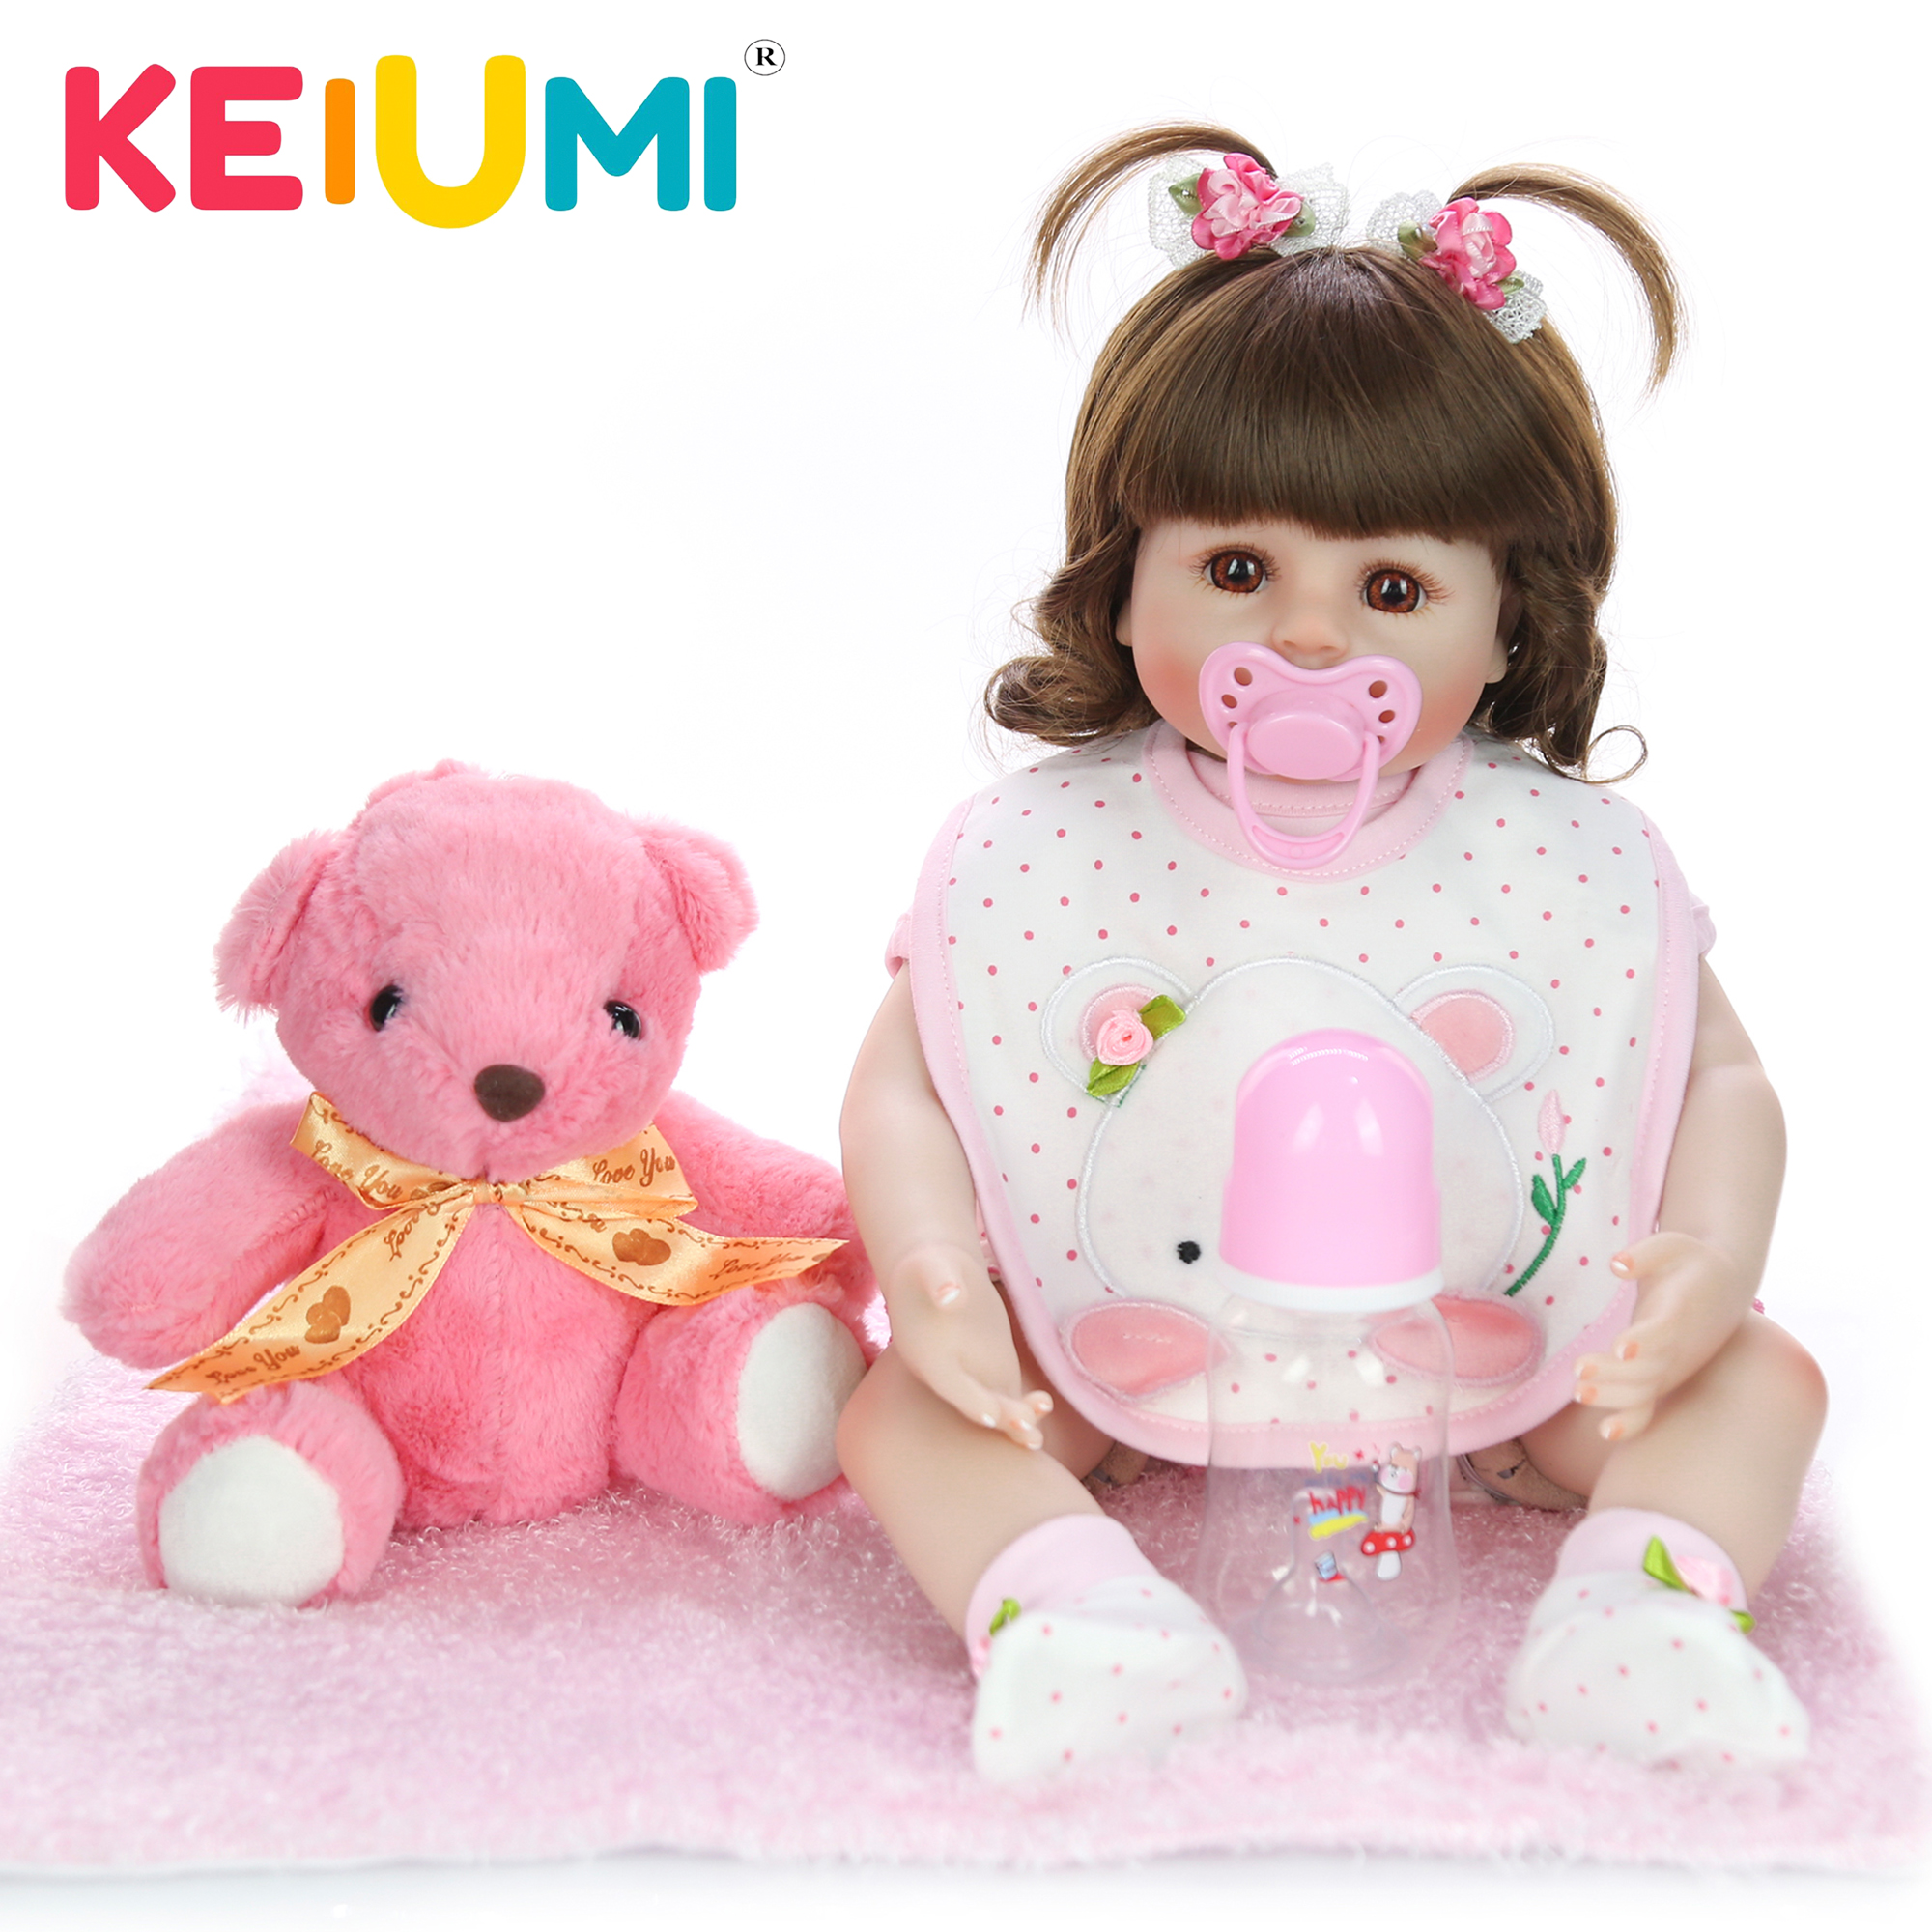 KEIUMI New Design 18 Inch Reborn Baby Doll Lovely Soft Silicone Cloth Body Realistic Baby Toy